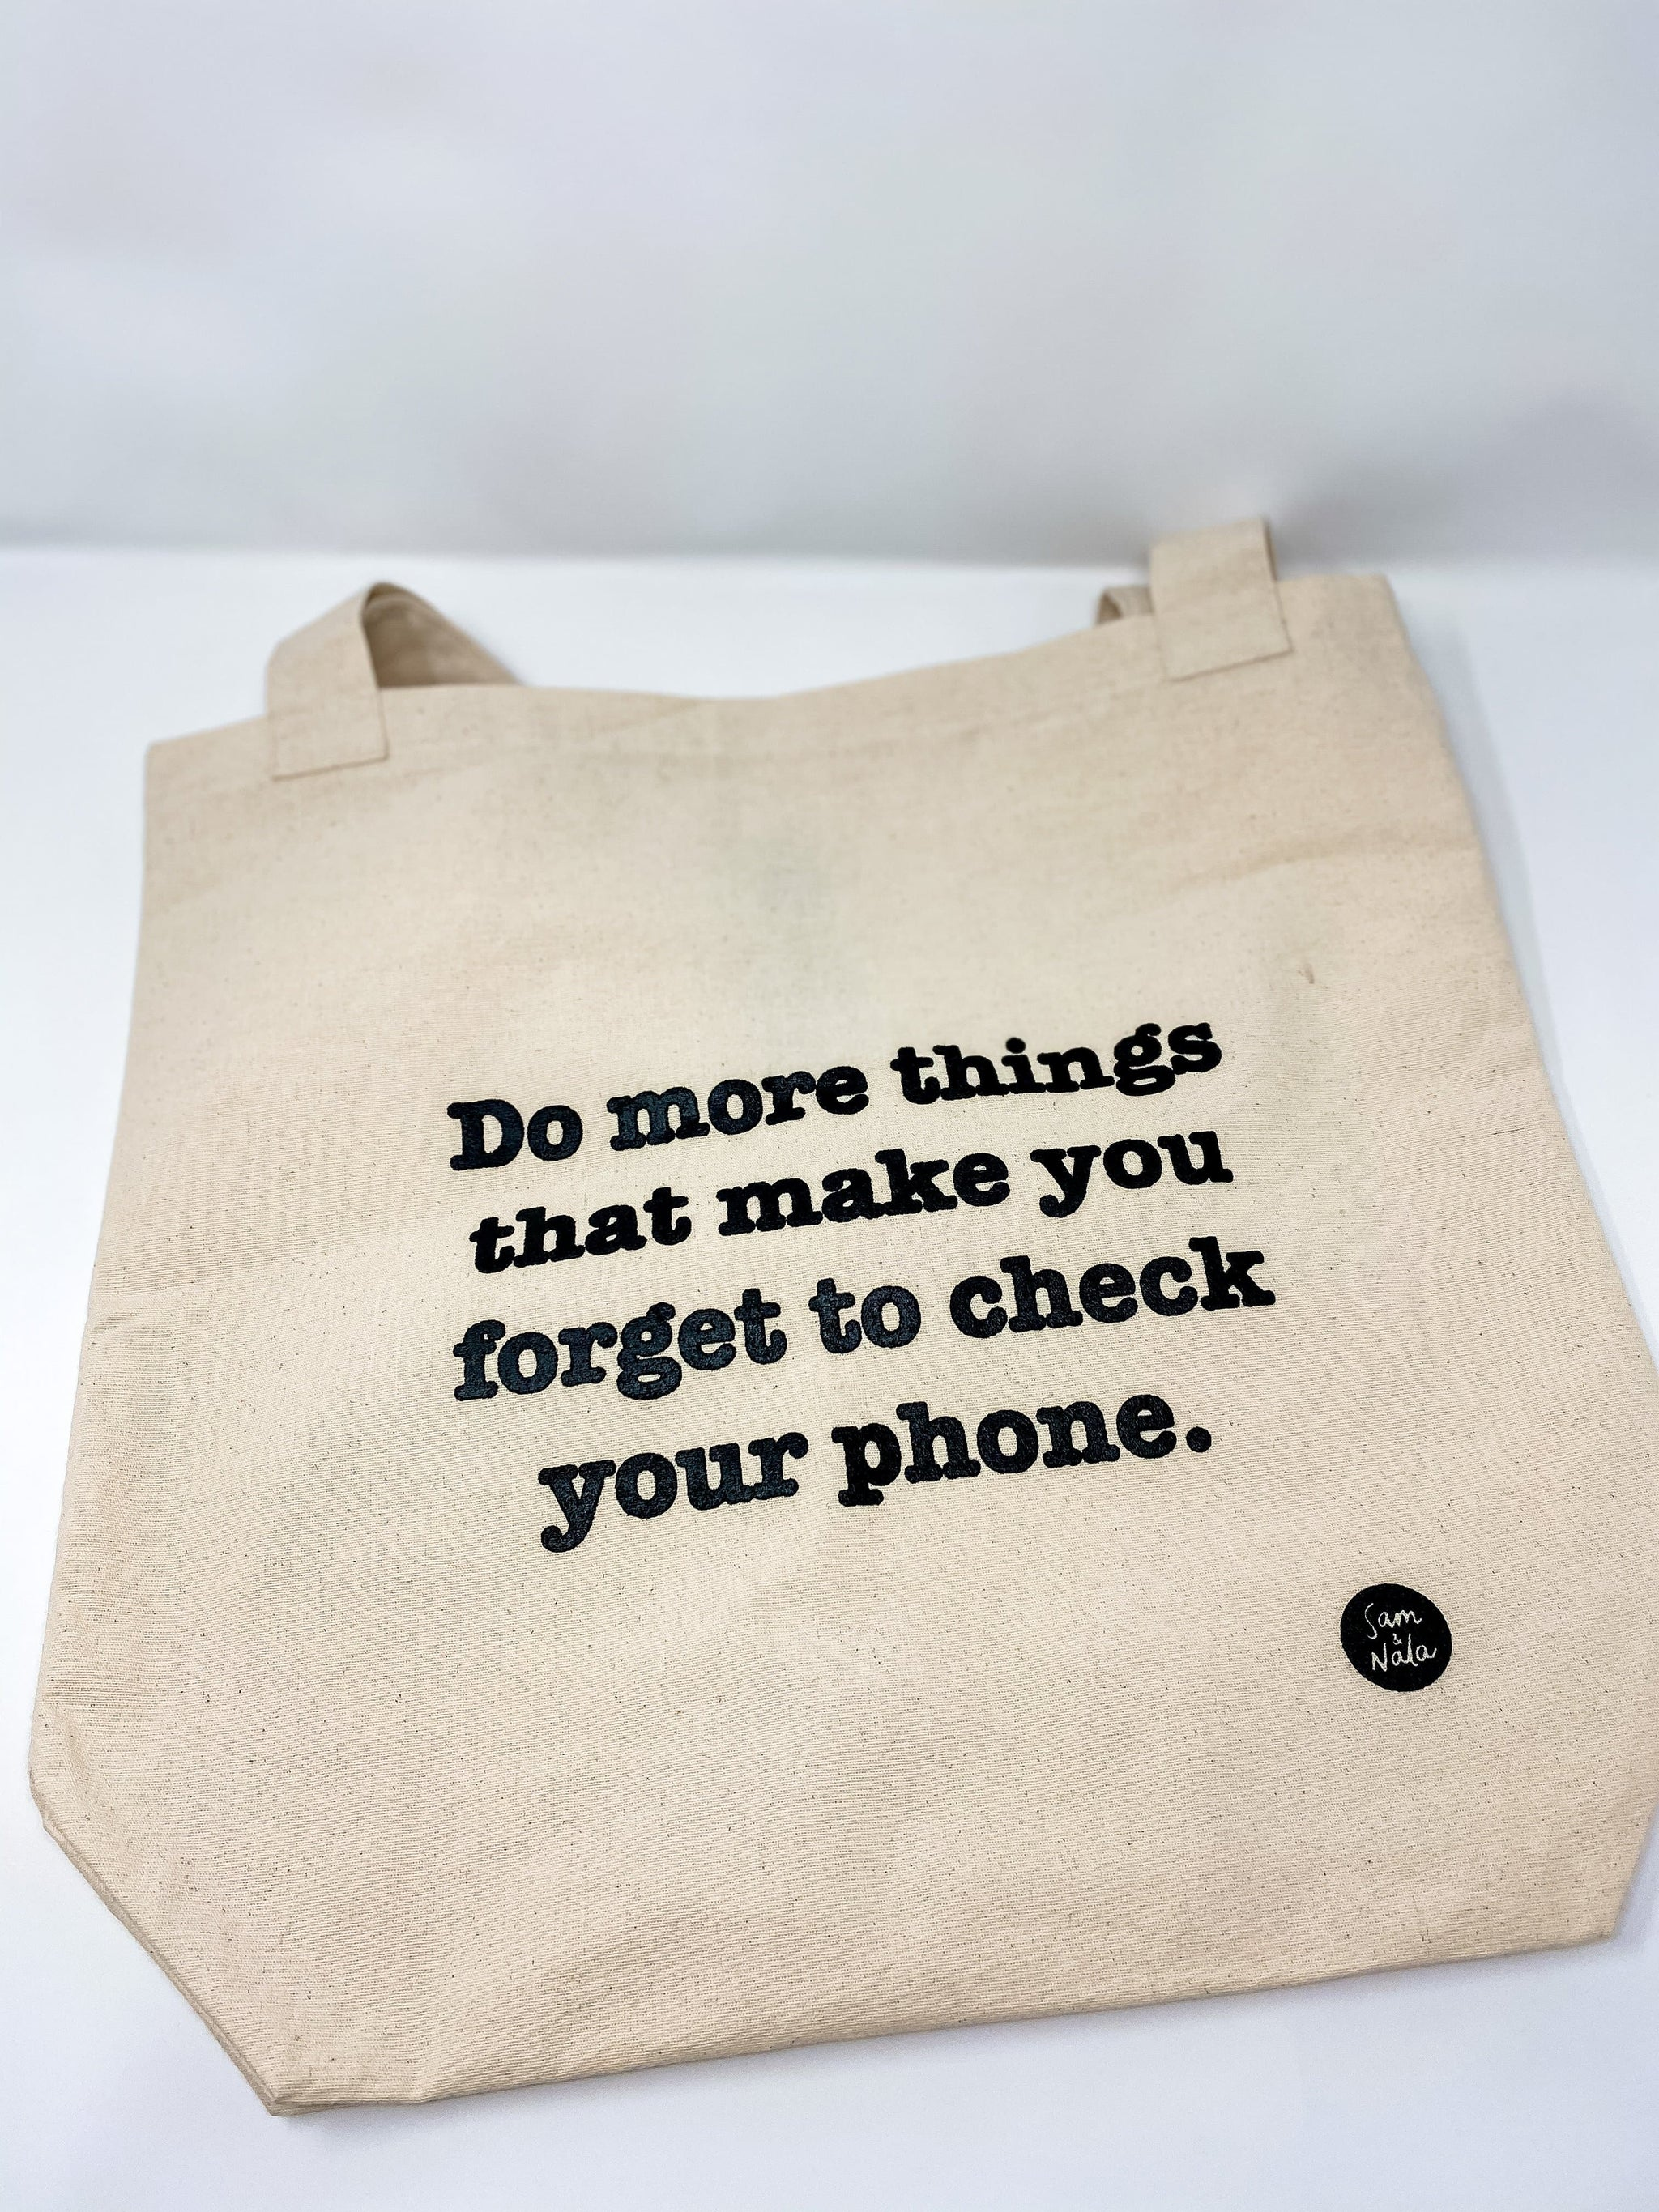 Recycled Canvas Bags - Do More Things